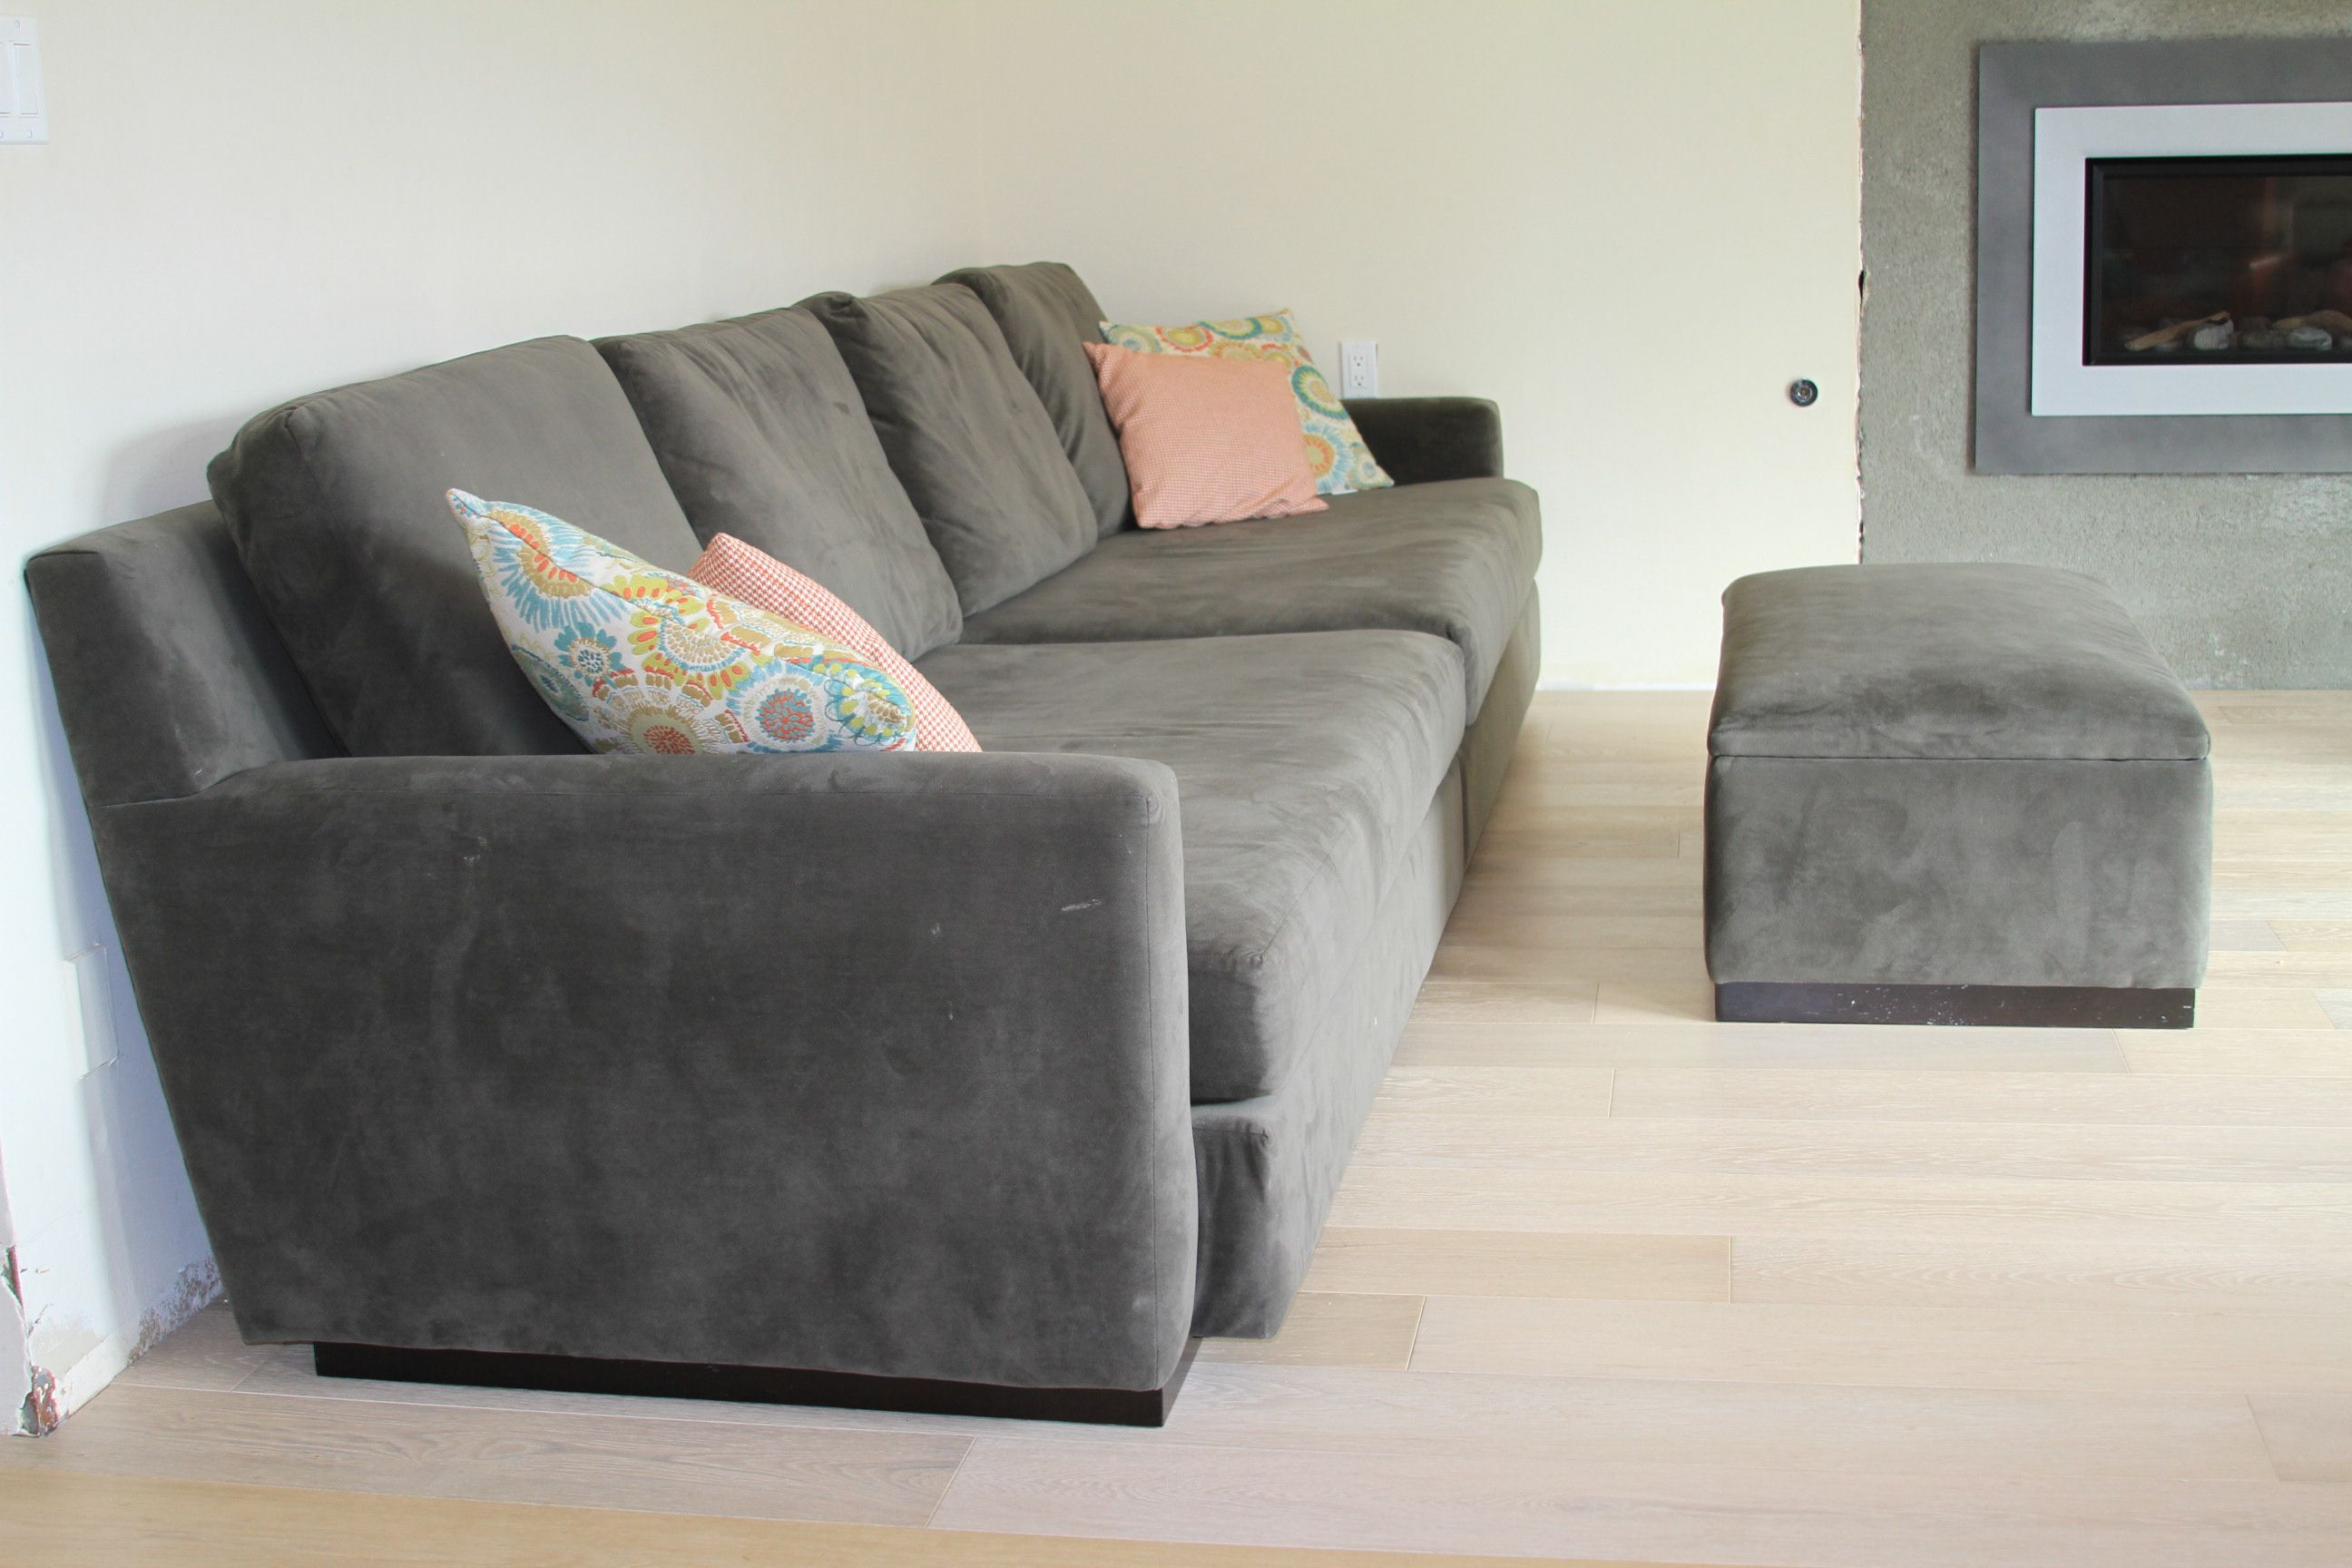 Single Angled Back Modern Sofa W/ Ottoman. Check Out Other Sofa Makeovers  At The